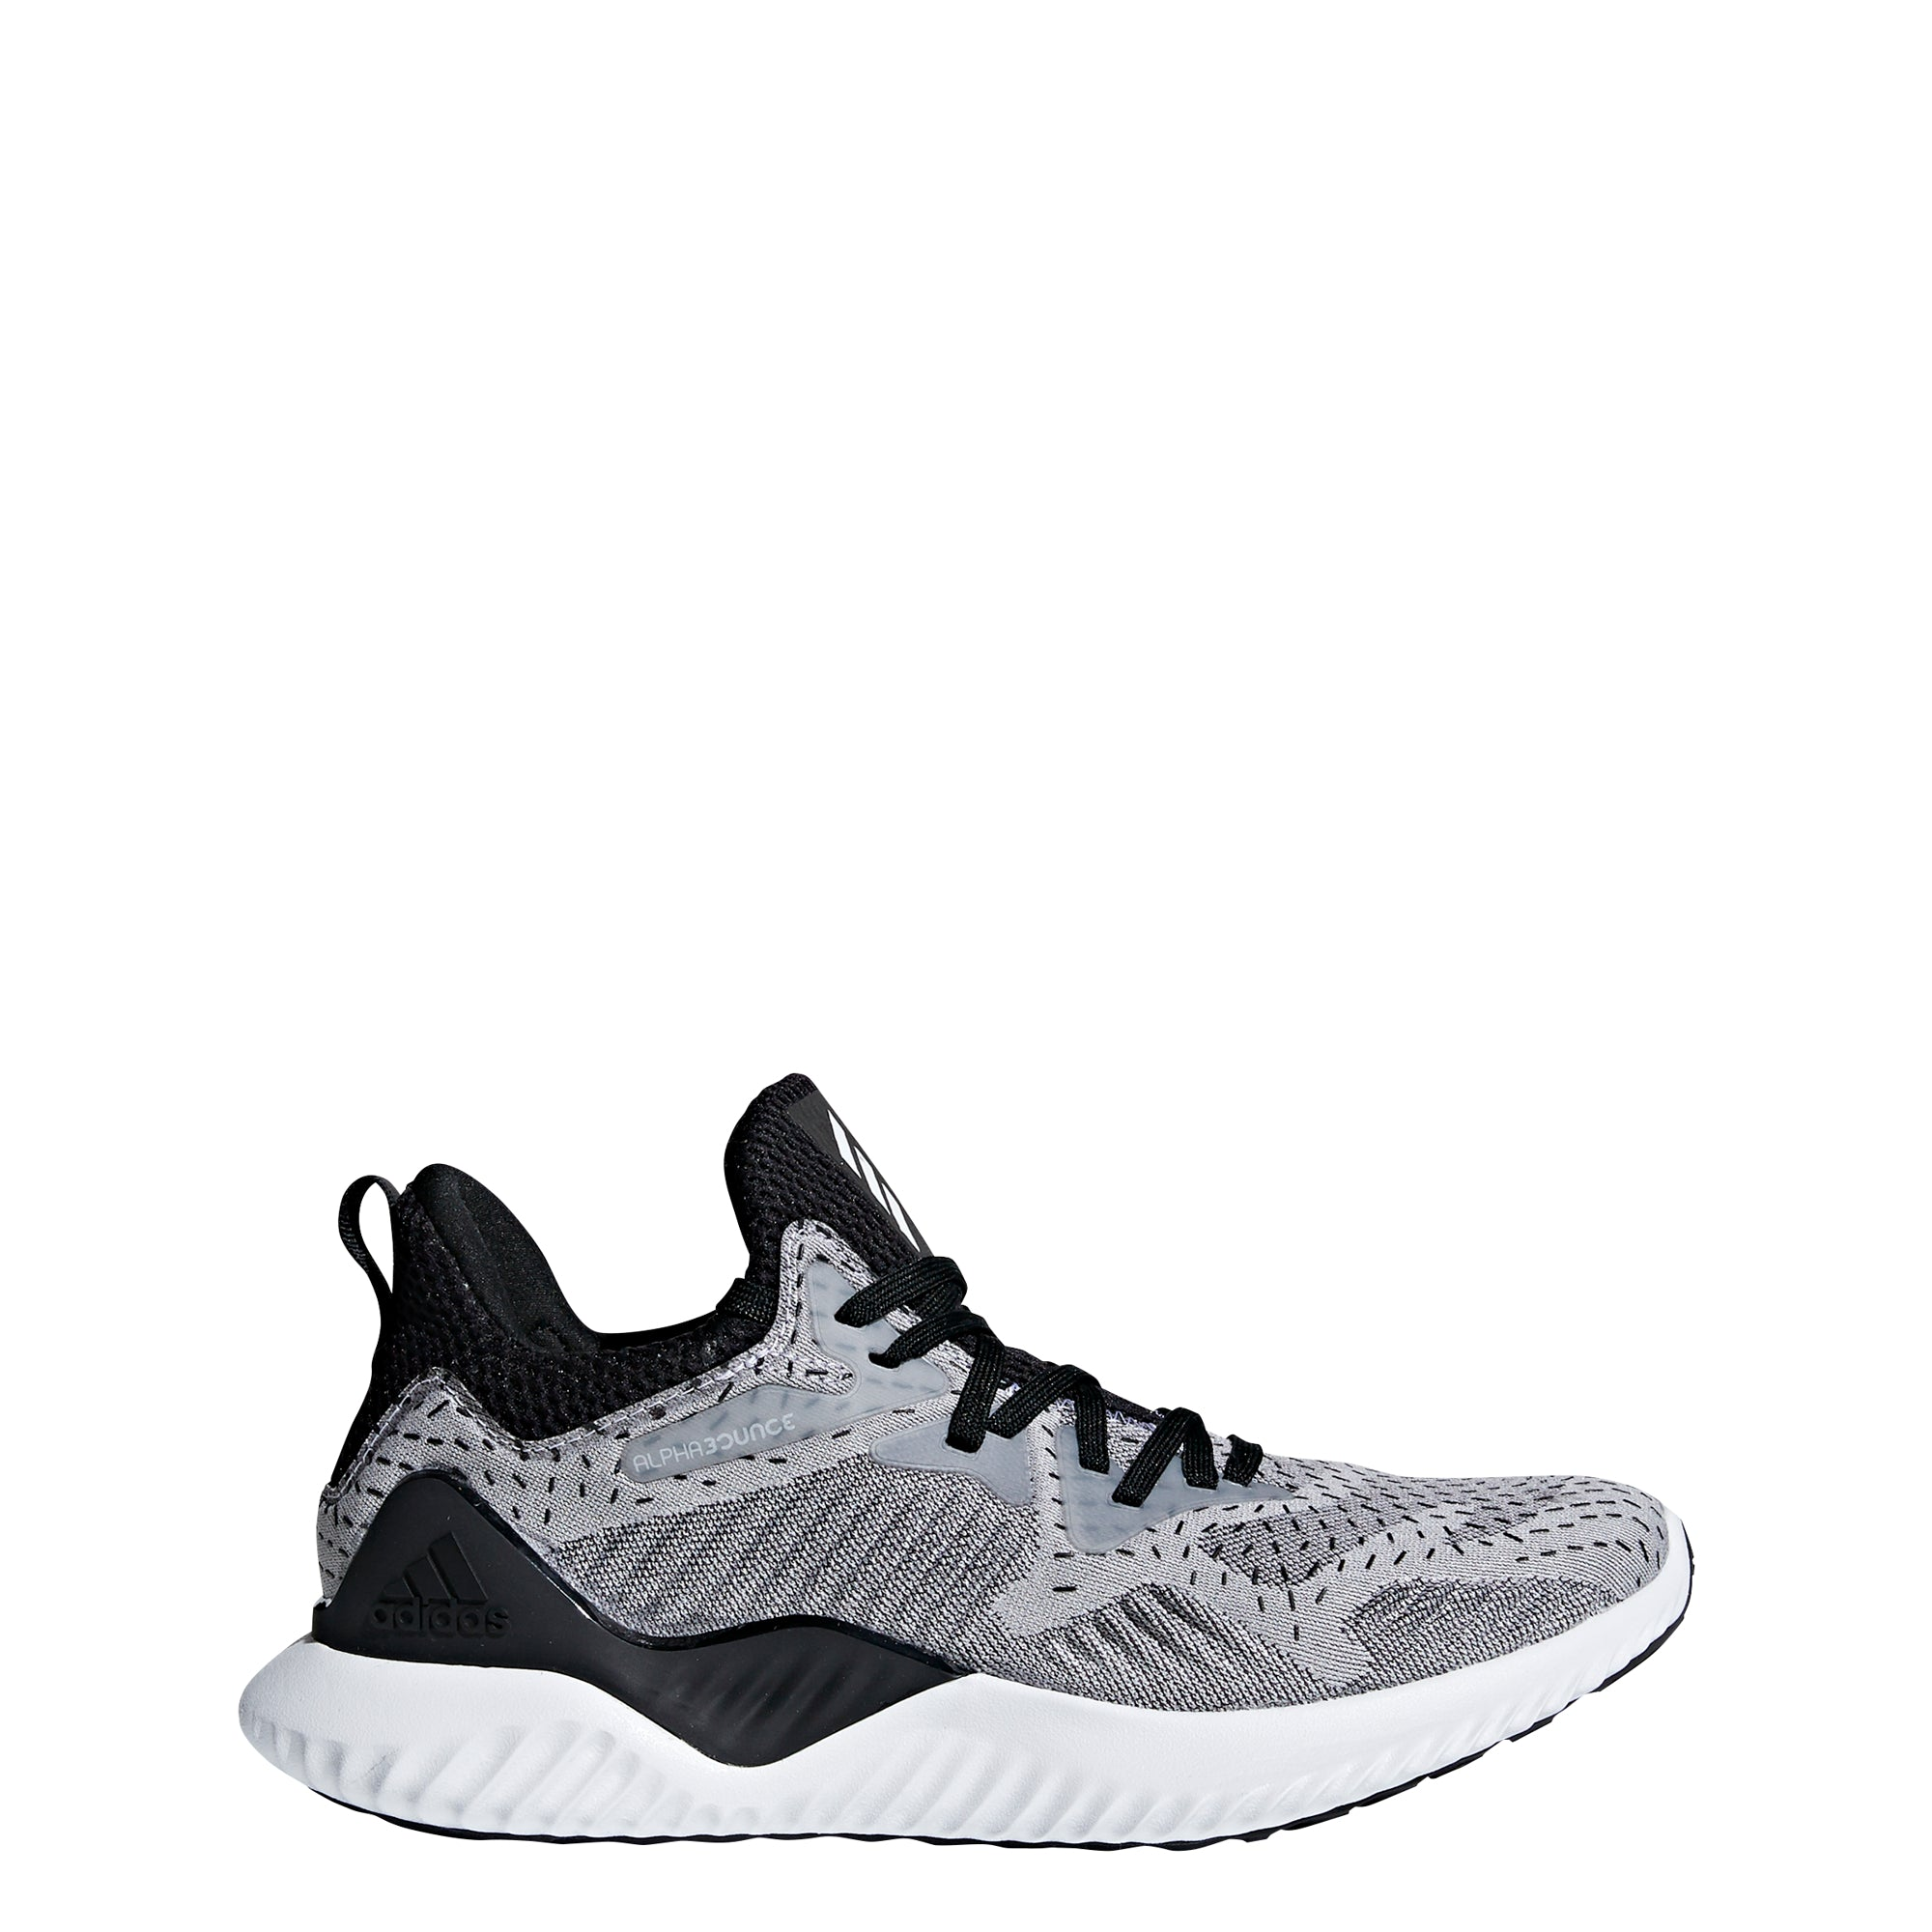 Buy Adidas Women alphabounce beyond w Running Shoes, Black/White in  Singapore - Royal Sporting House